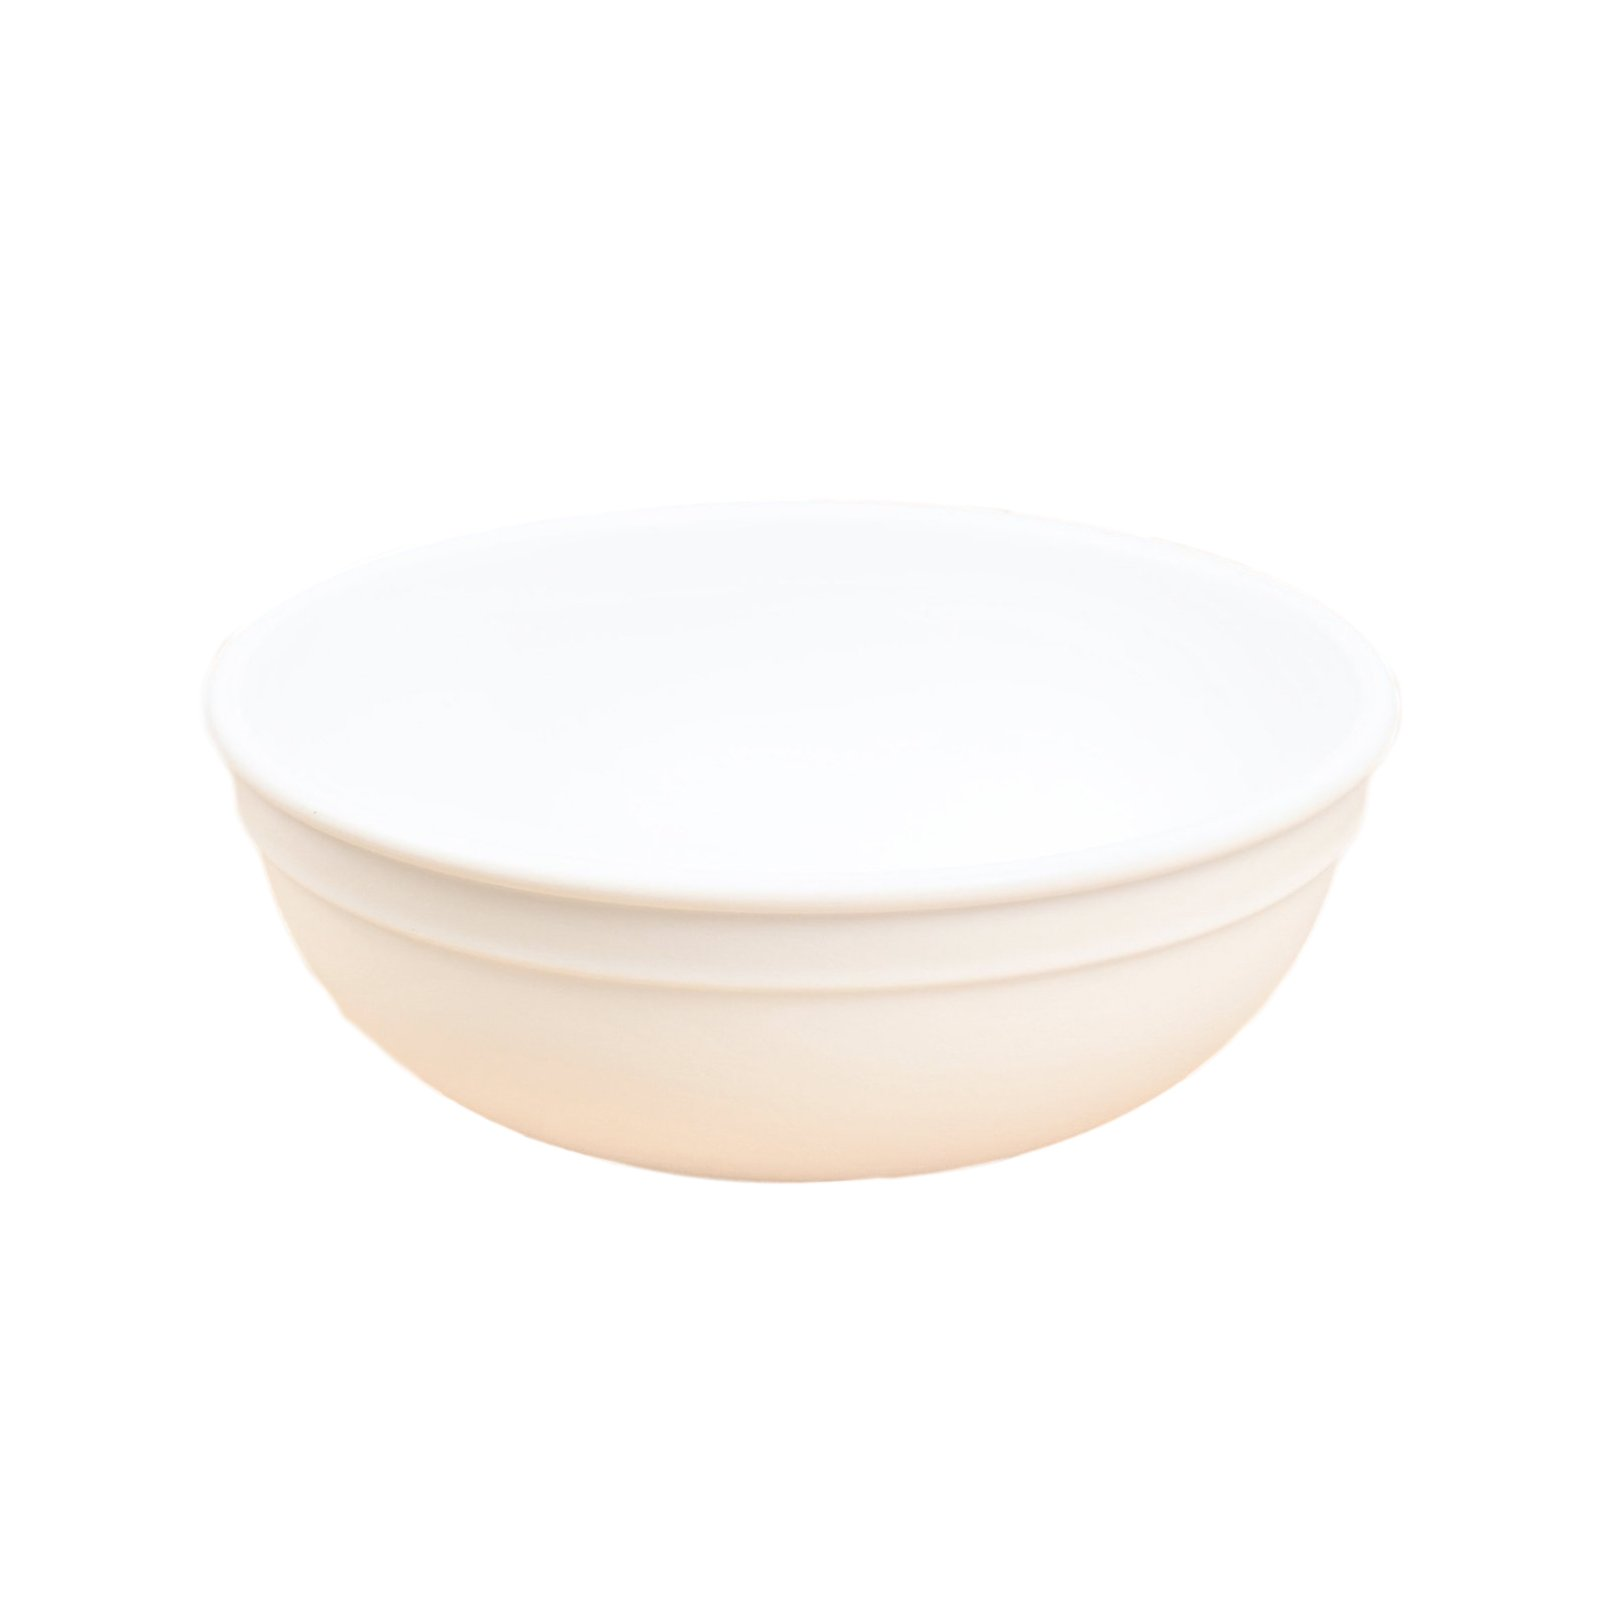 Replay Large Bowl Replay Dinnerware White at Little Earth Nest Eco Shop